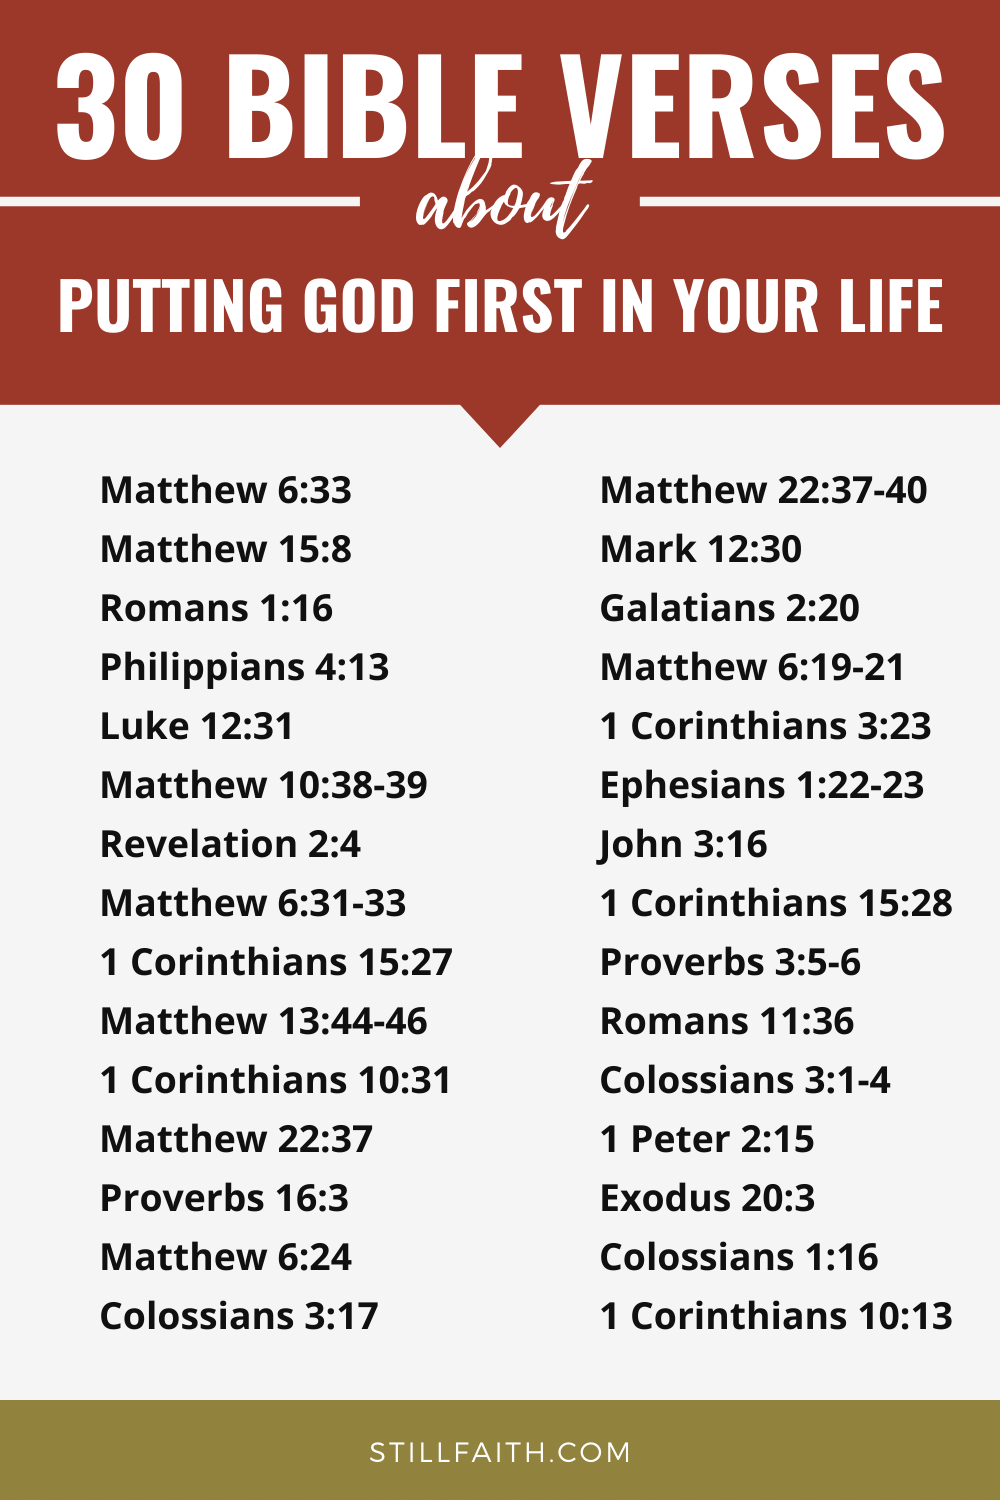 158 Bible Verses about Putting God First in Your Life